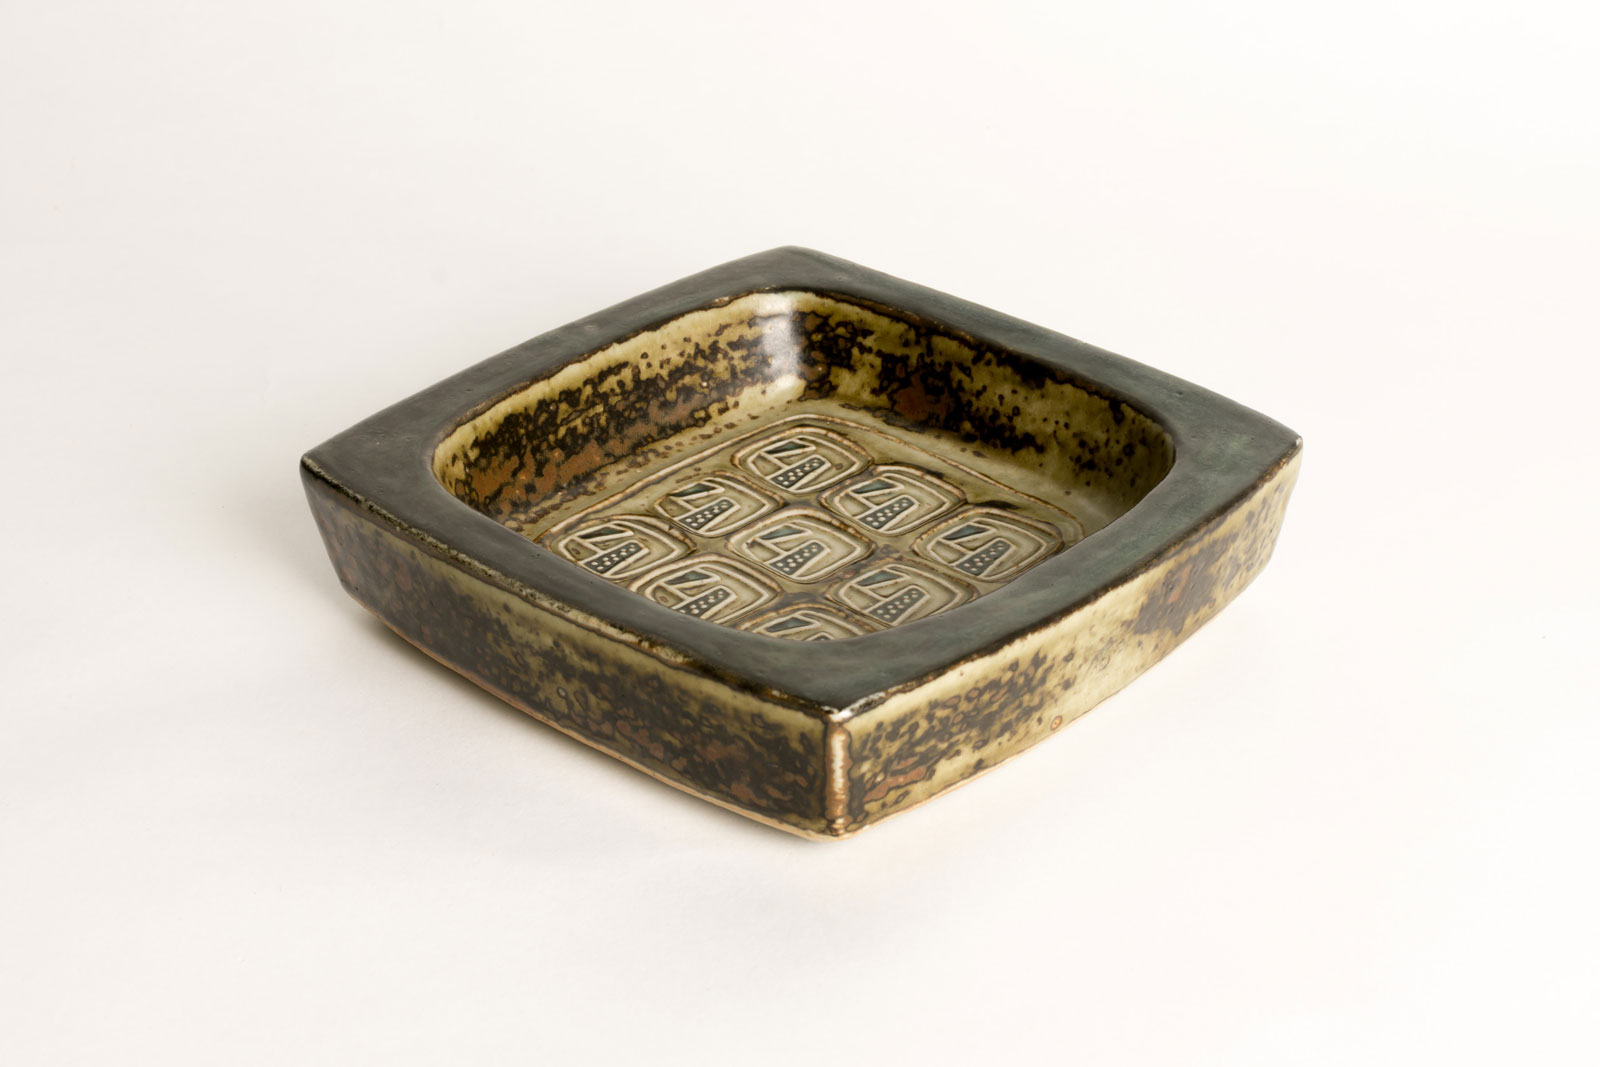 Ashtray designed by Jorgen Mogensen